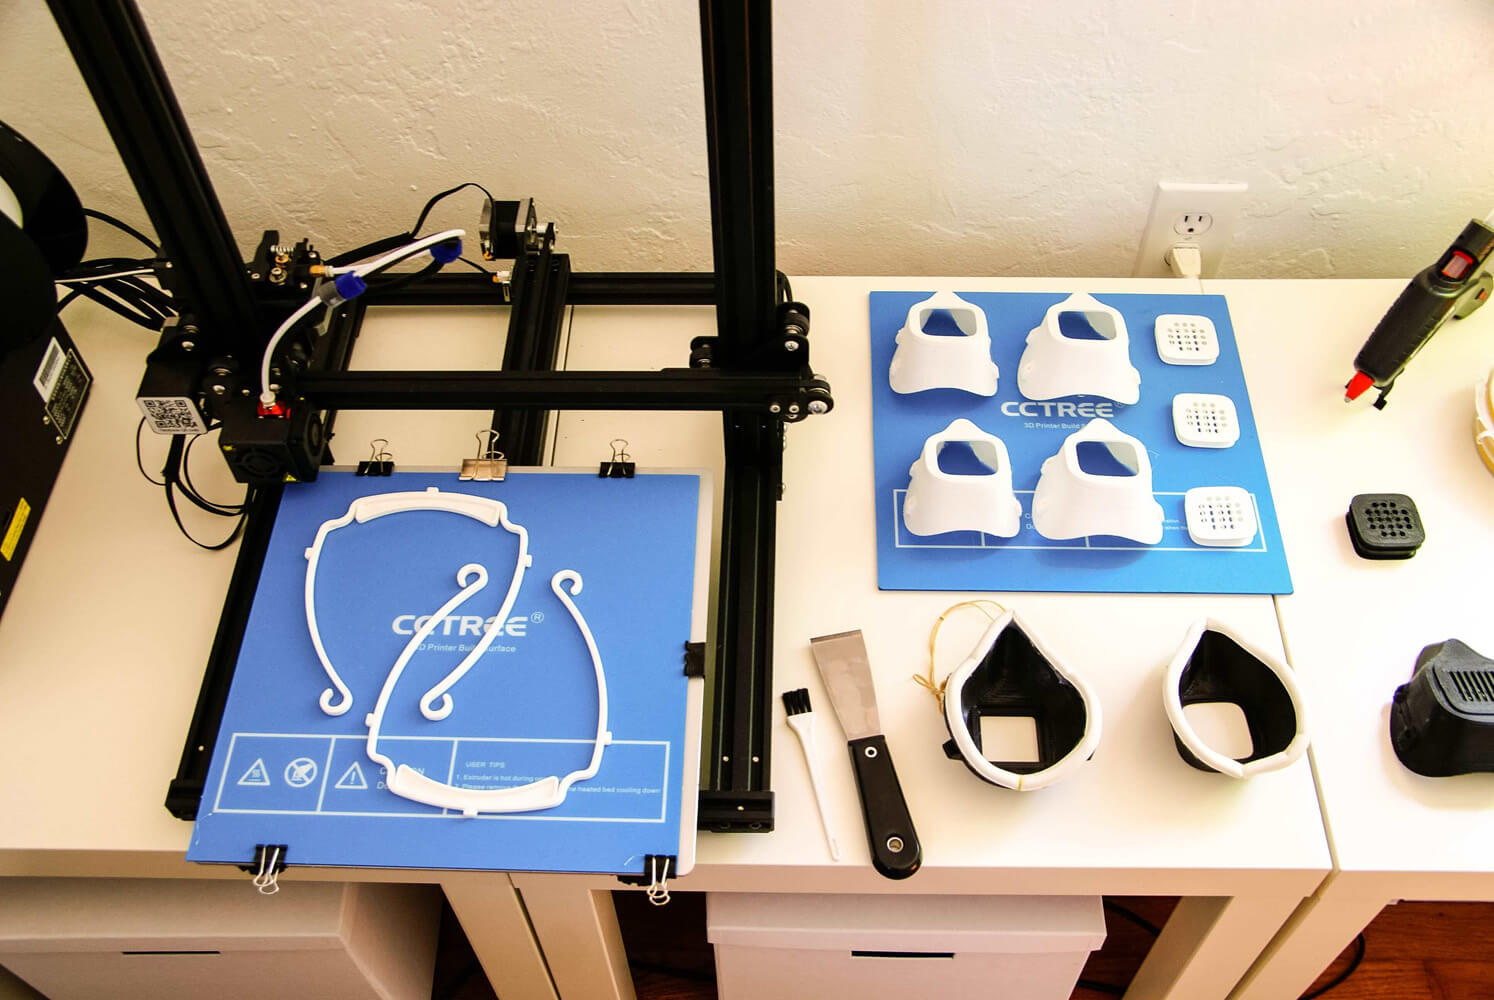 Contribution from MAPS, an organization with 3D printing capabilities located in Portland, Oregon